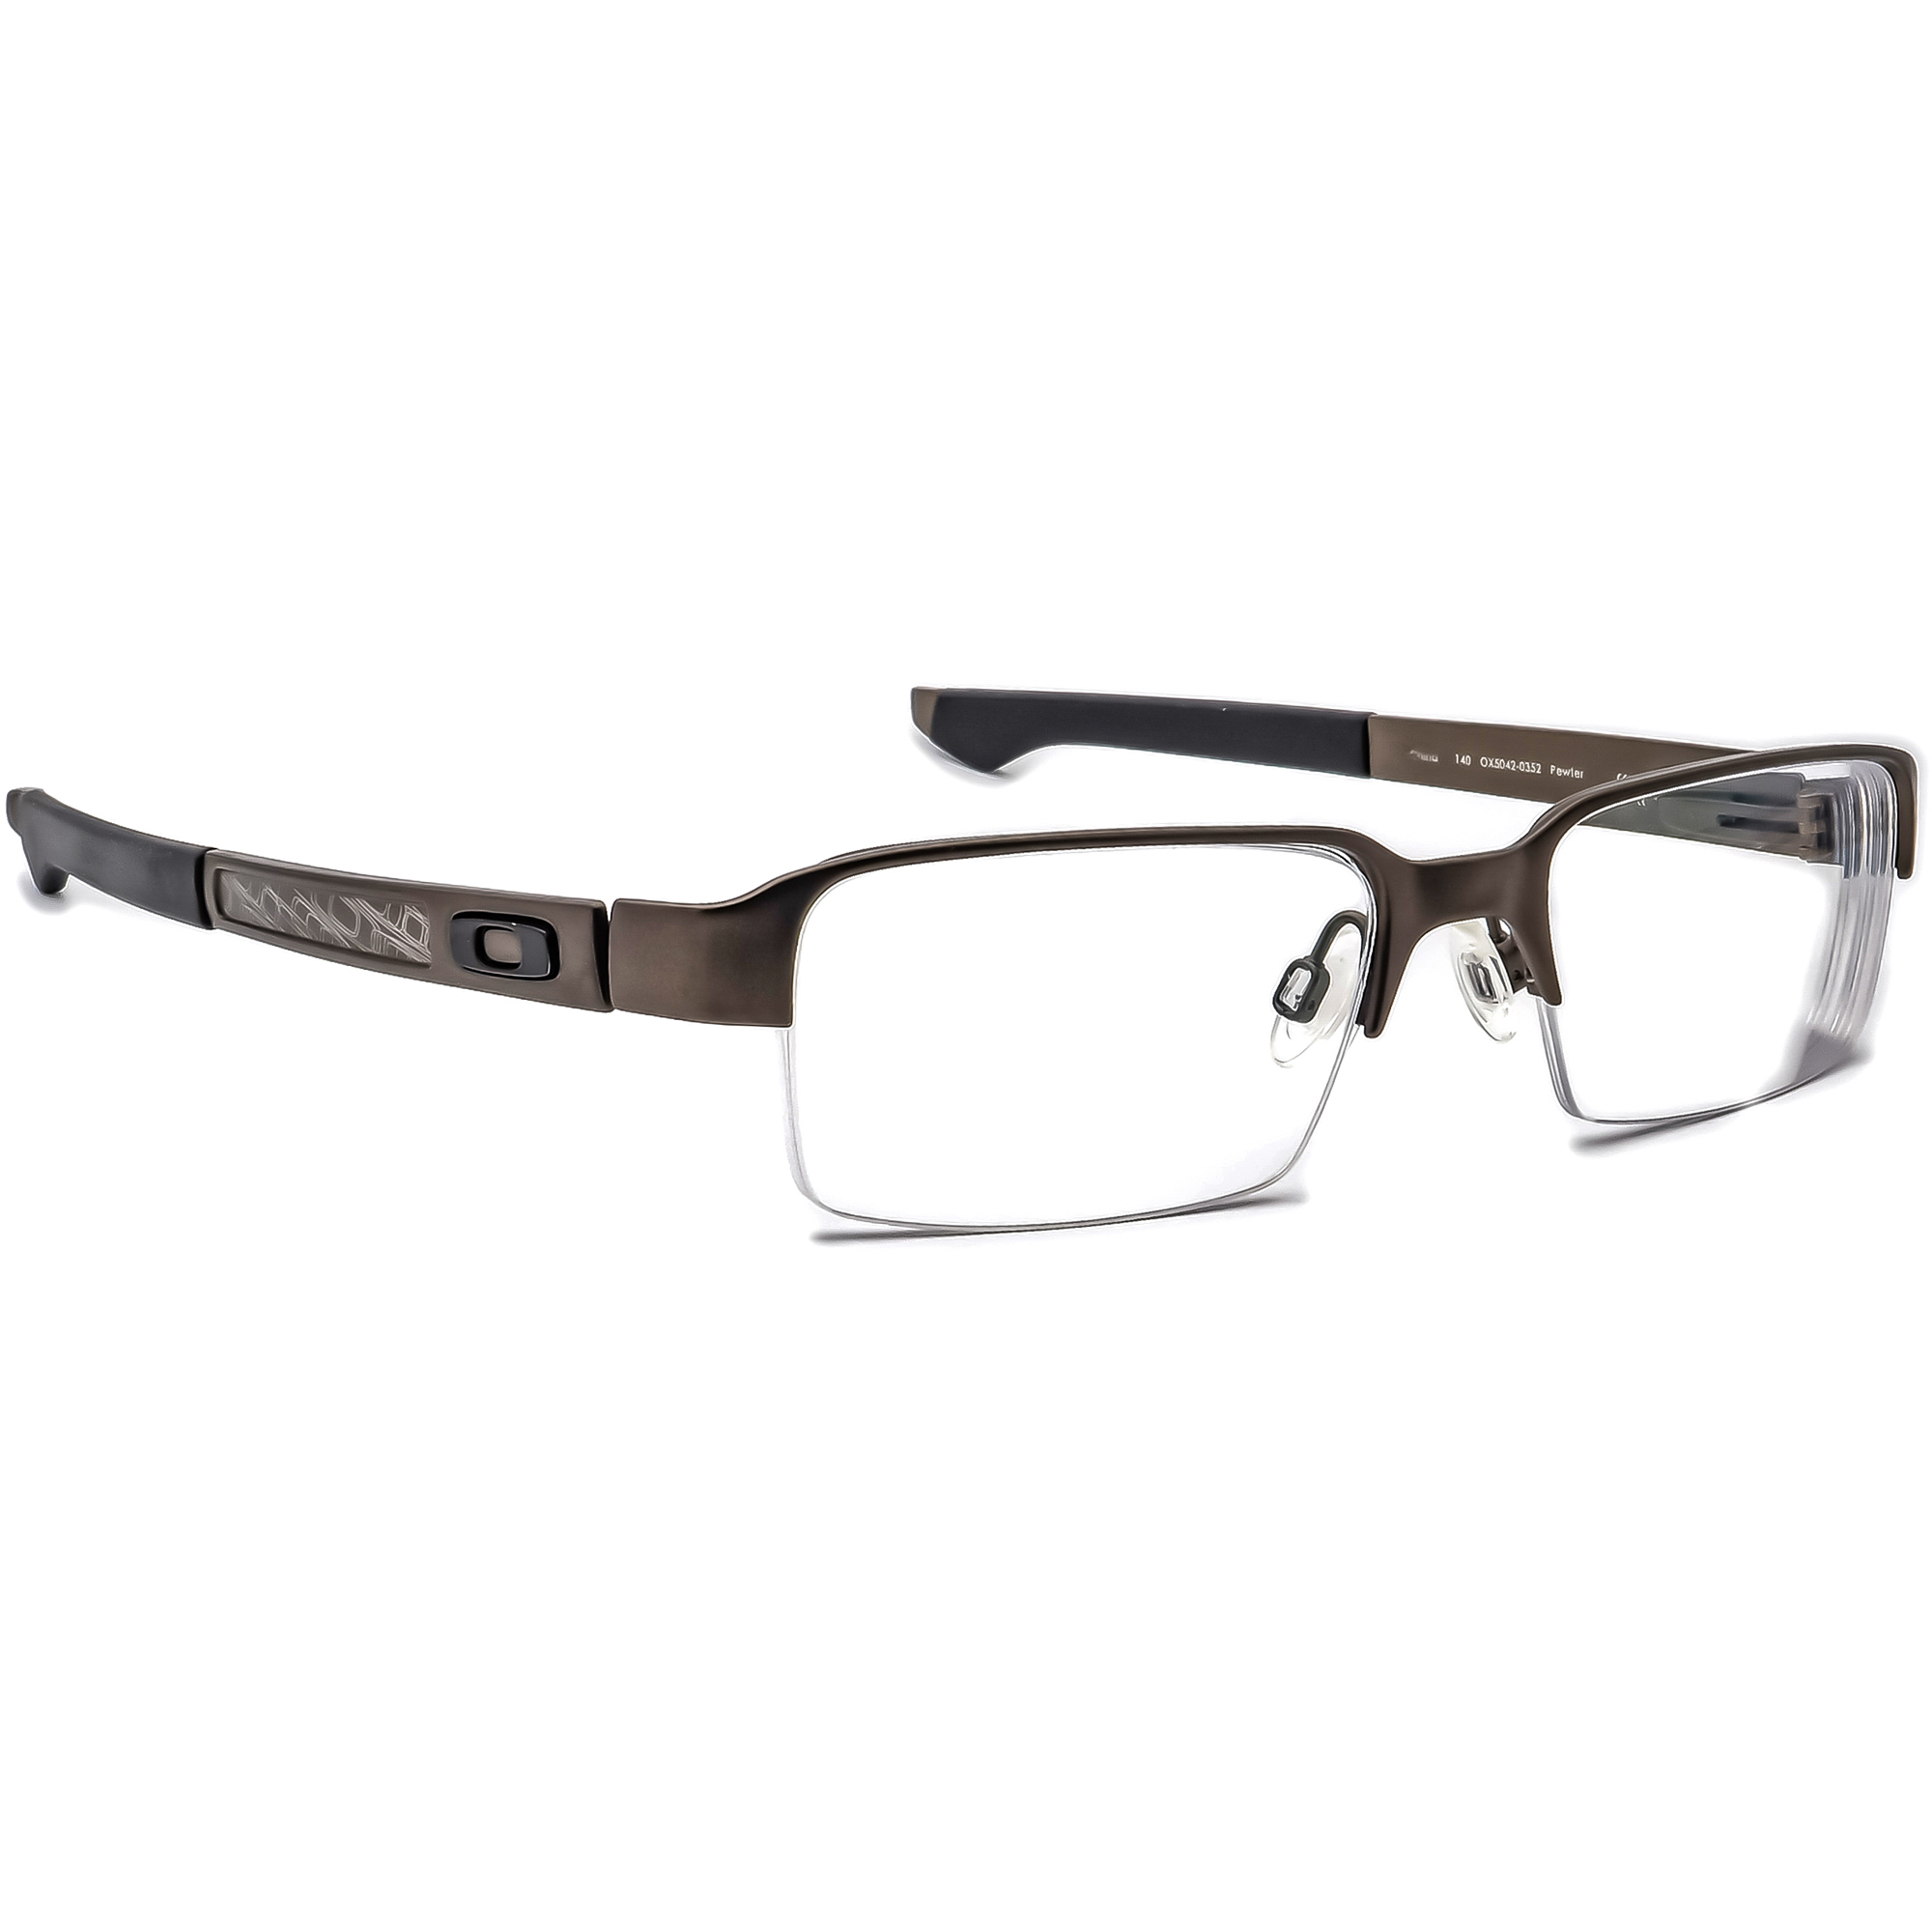 Oakley OX5042-0352 Boomstand Eyeglasses